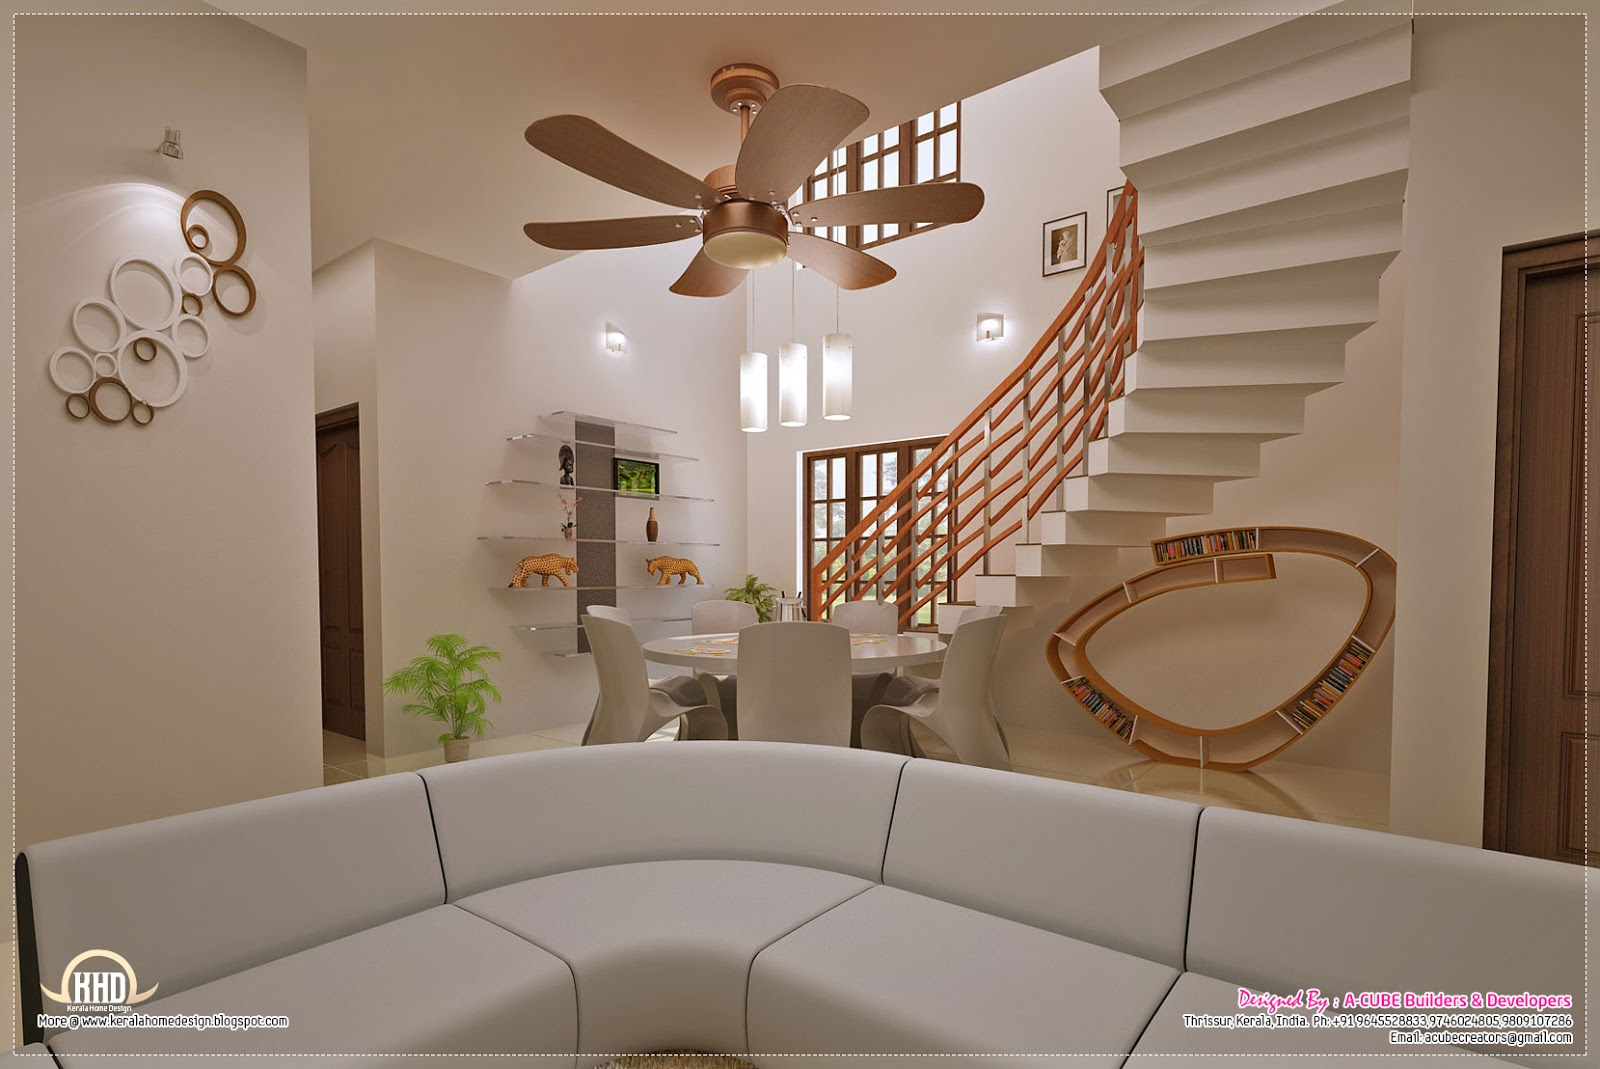 Awesome interior decoration ideas home kerala plans for Interior decoration images